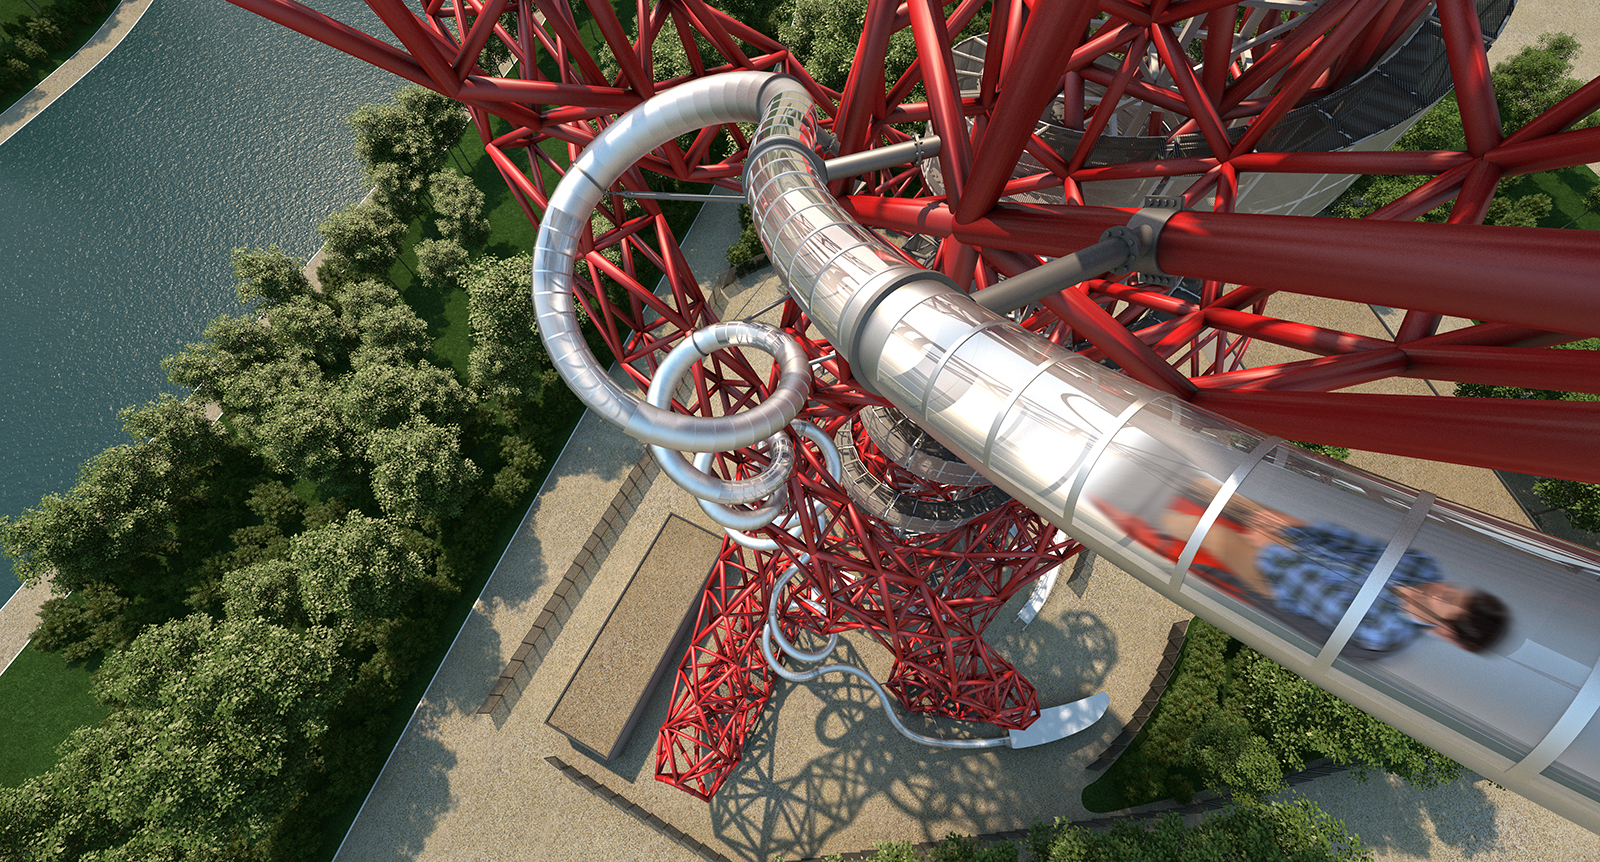 The Slide at ArcelorMittal Orbit Tower